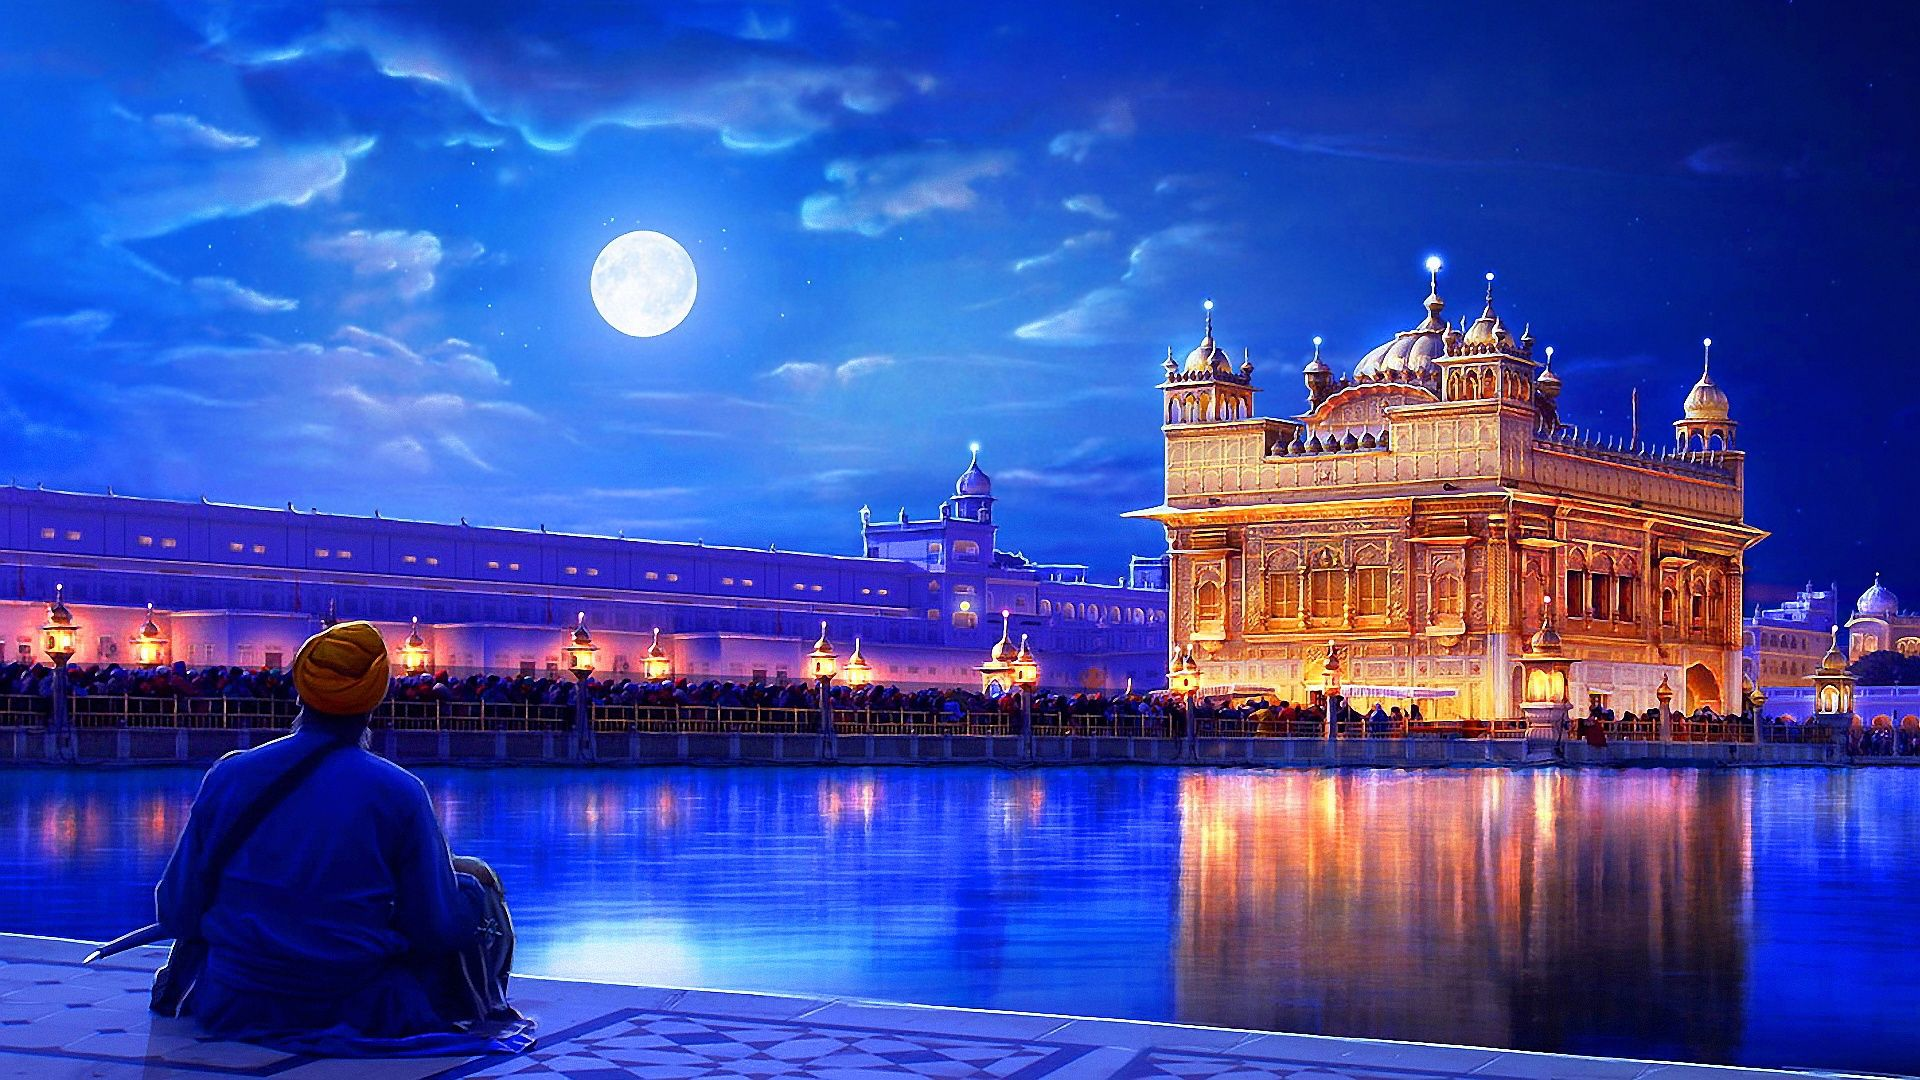 Golden temple india india wallpaper hd free wallpapers - Golden temple images hd download ...